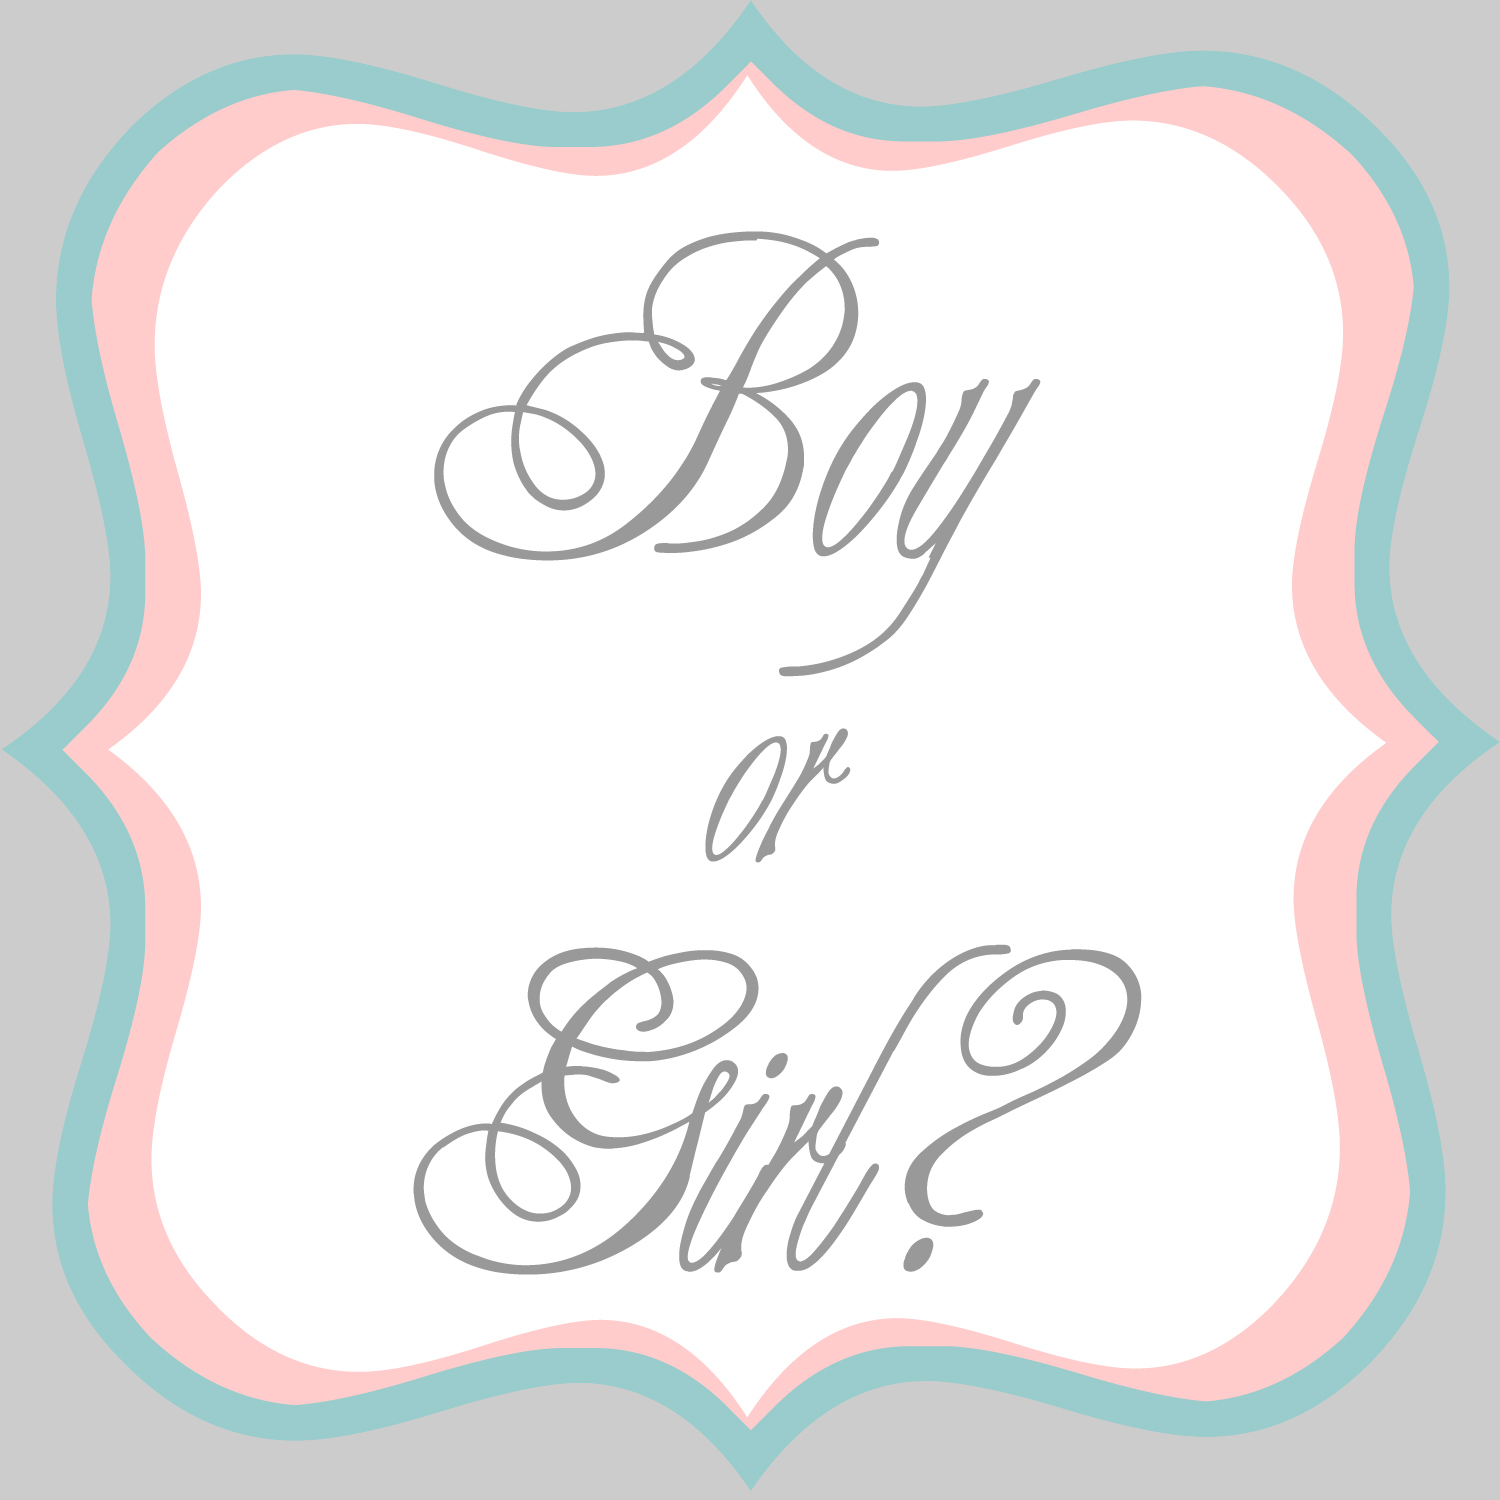 Baby Girl On The Way Quotes: Quotes Girl Boy Or Gender. QuotesGram